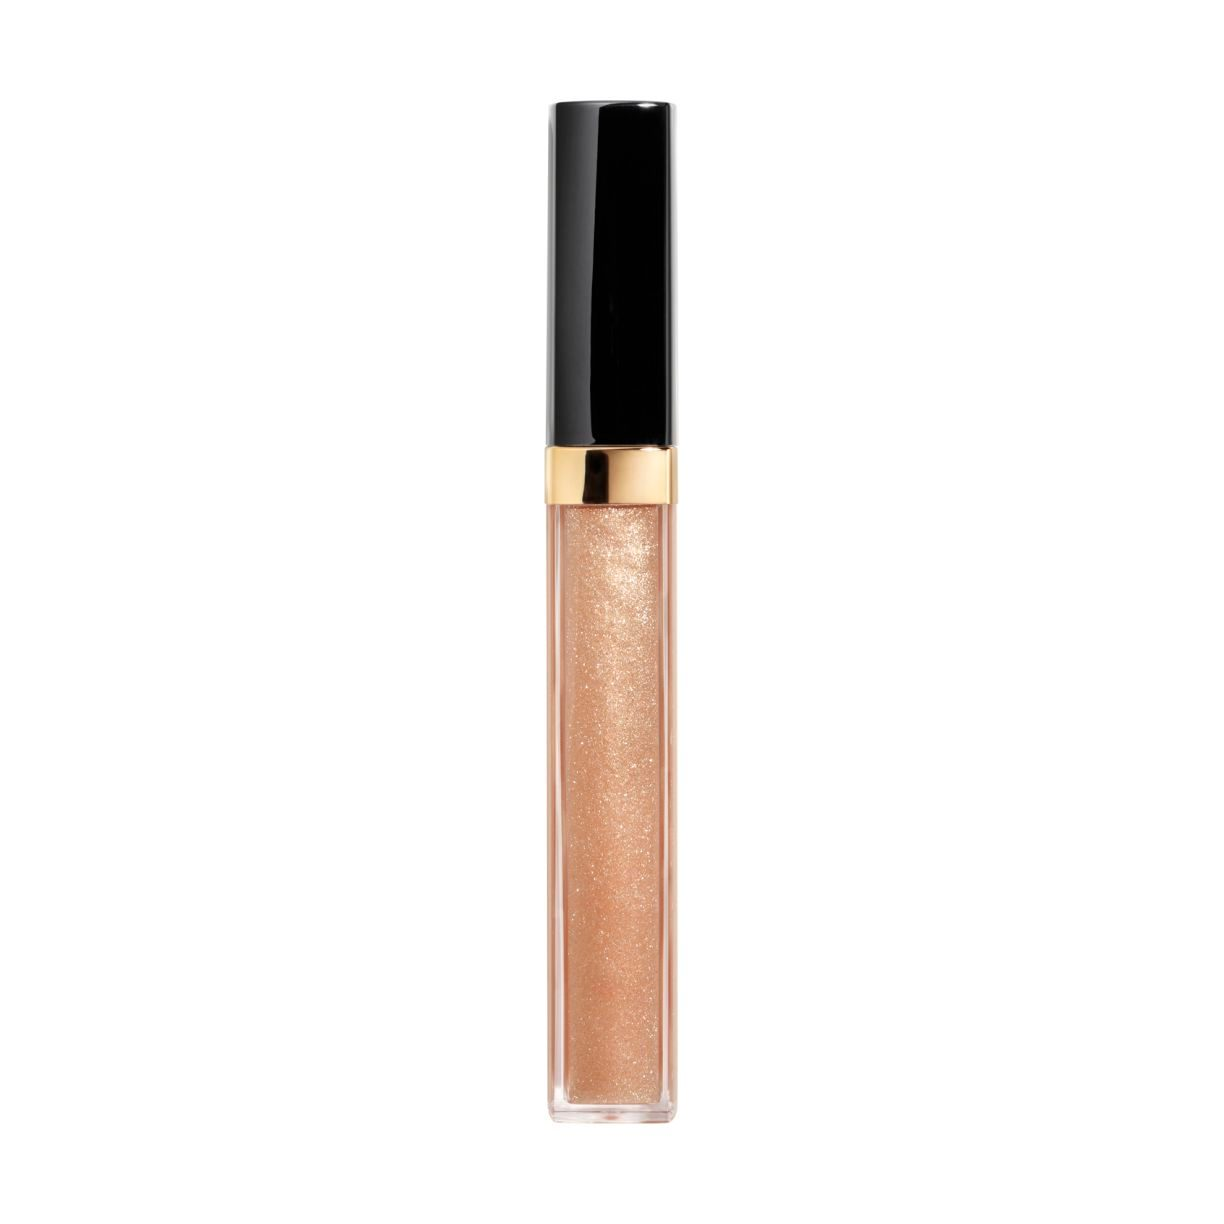 ROUGE COCO GLOSS MOISTURISING GLOSSIMER 712 - MELTED HONEY